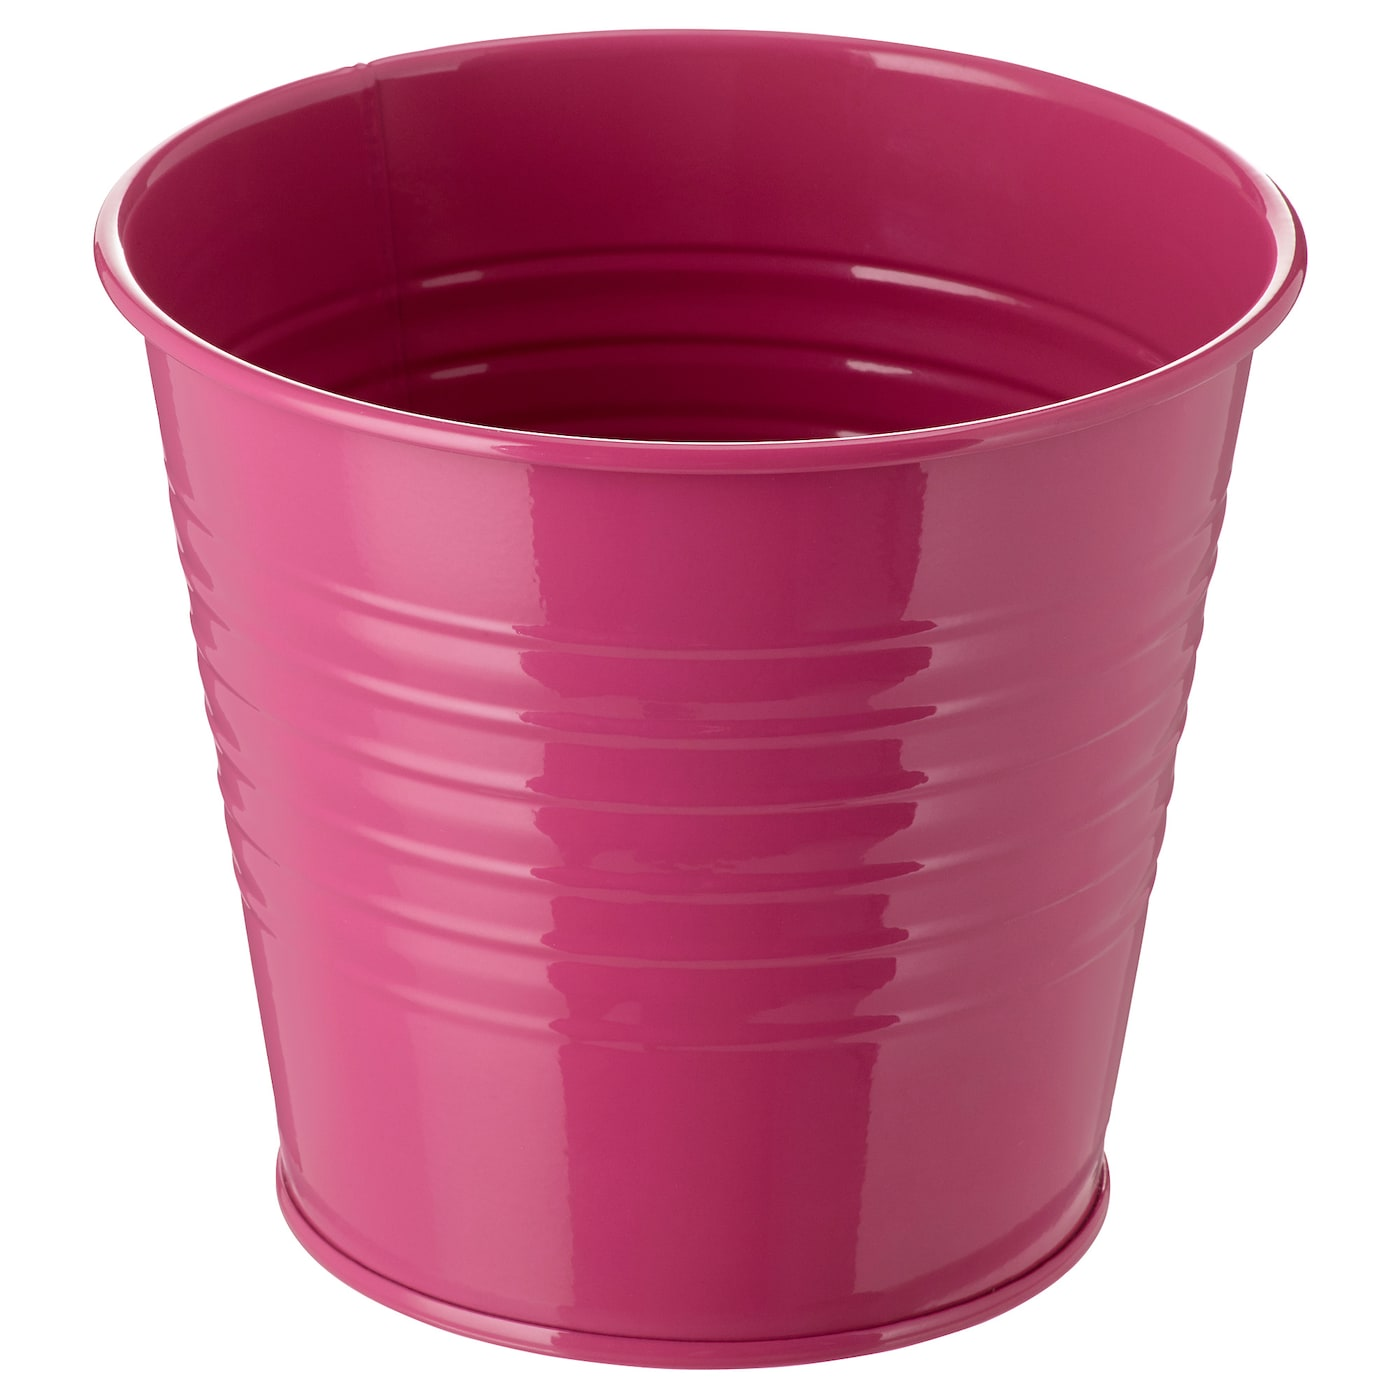 Socker cache pot int rieur ext rieur rose 12 cm ikea for Cache pots exterieur